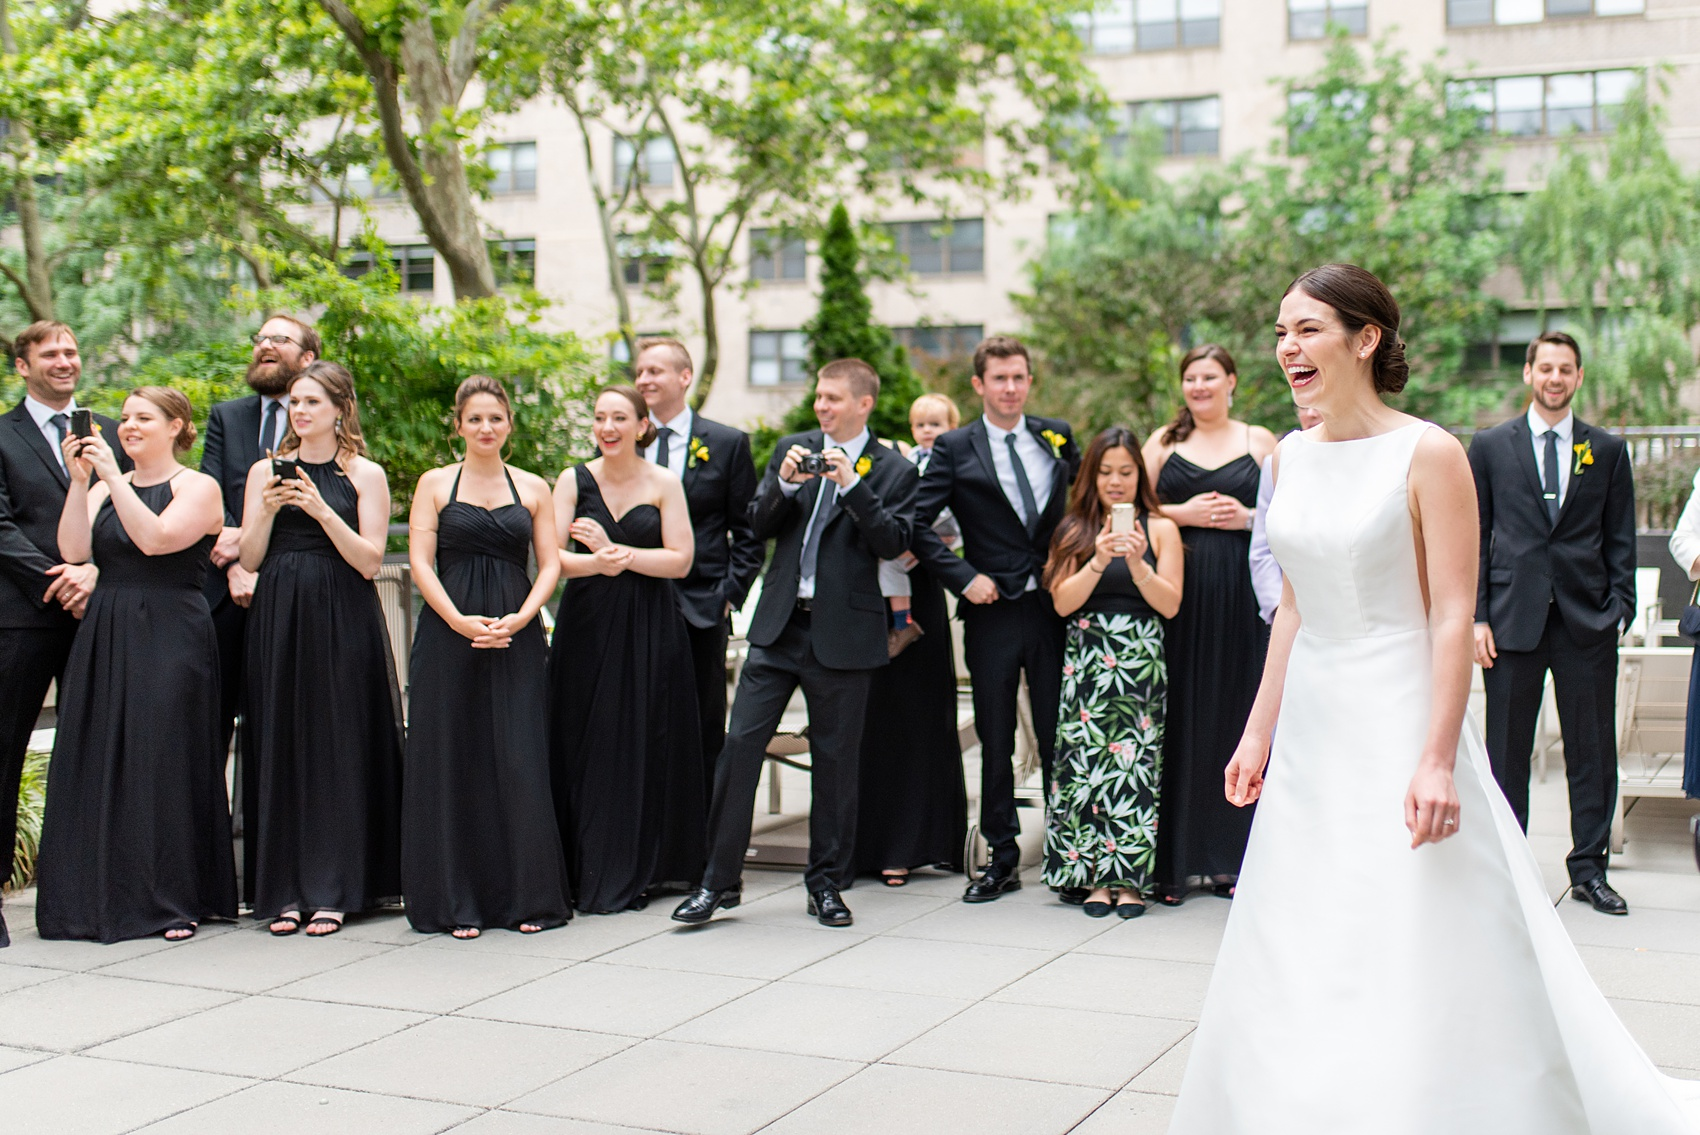 Manhattan Central Park wedding photos by Mikkel Paige Photography at Loeb Boathouse venue. These summer ceremony and reception pictures show a timeless couple having fun at their colorful day with guests who traveled in from abroad. The bride and groom did their first look on the Upper West Side...click through for the complete post! #CentralParkWeddingVenues #NYCweddingphotographer #NYCwedding